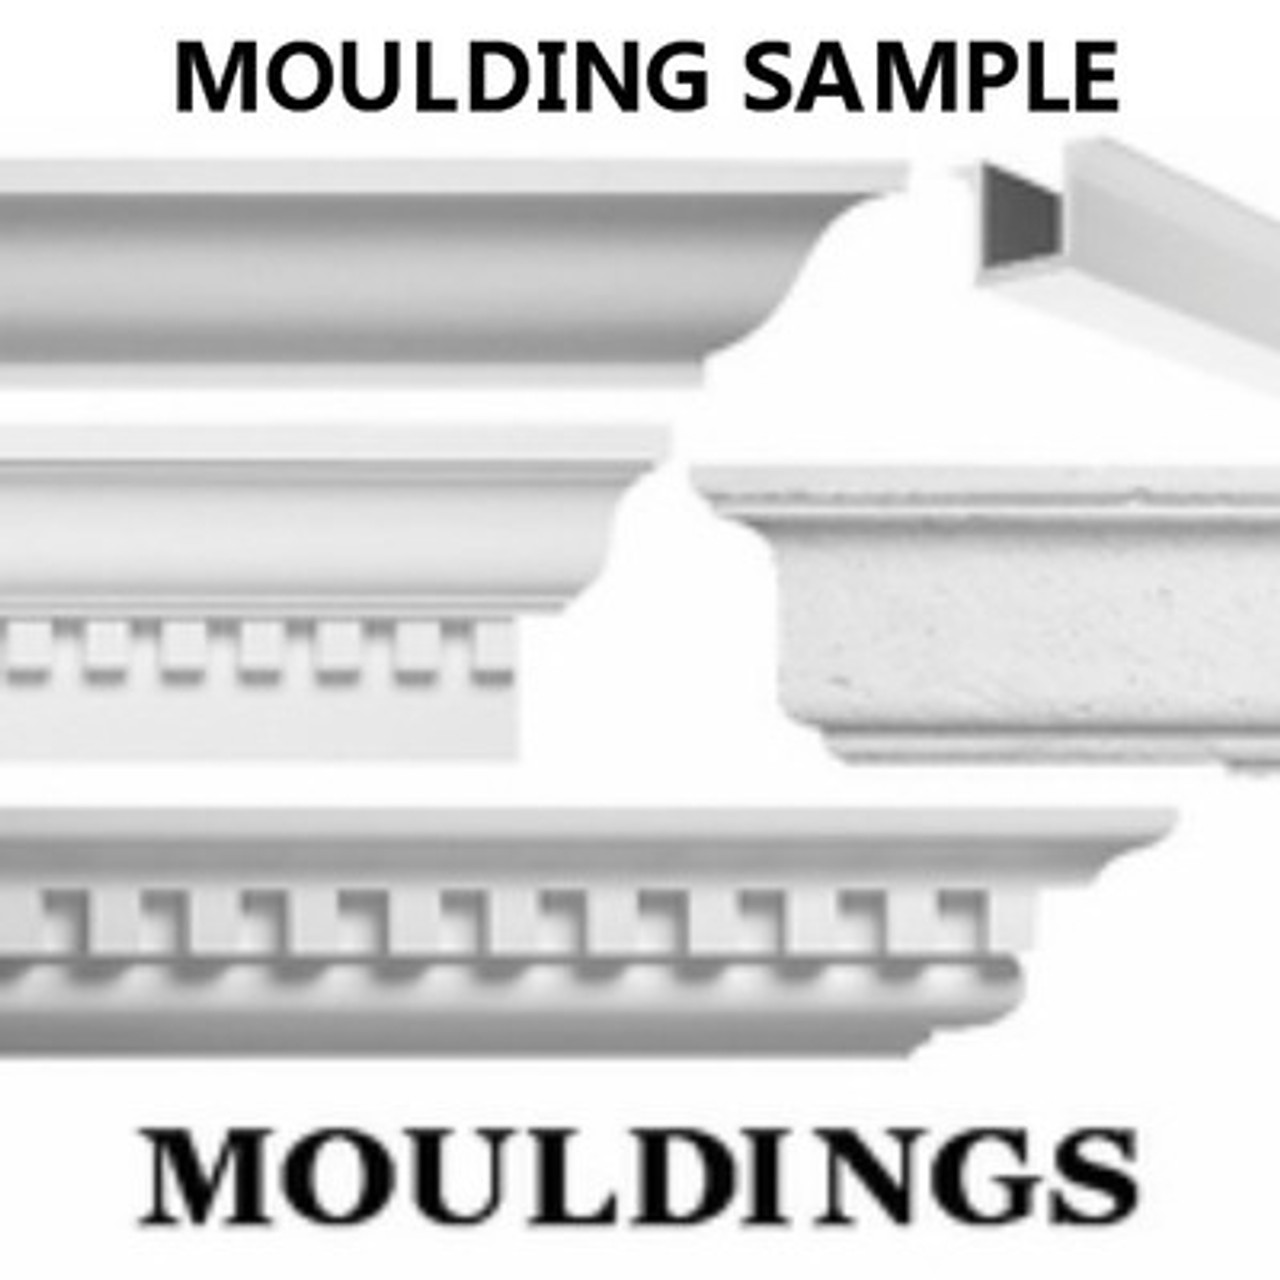 SAMPLE MOULDINGS - MD1439 to MD1537